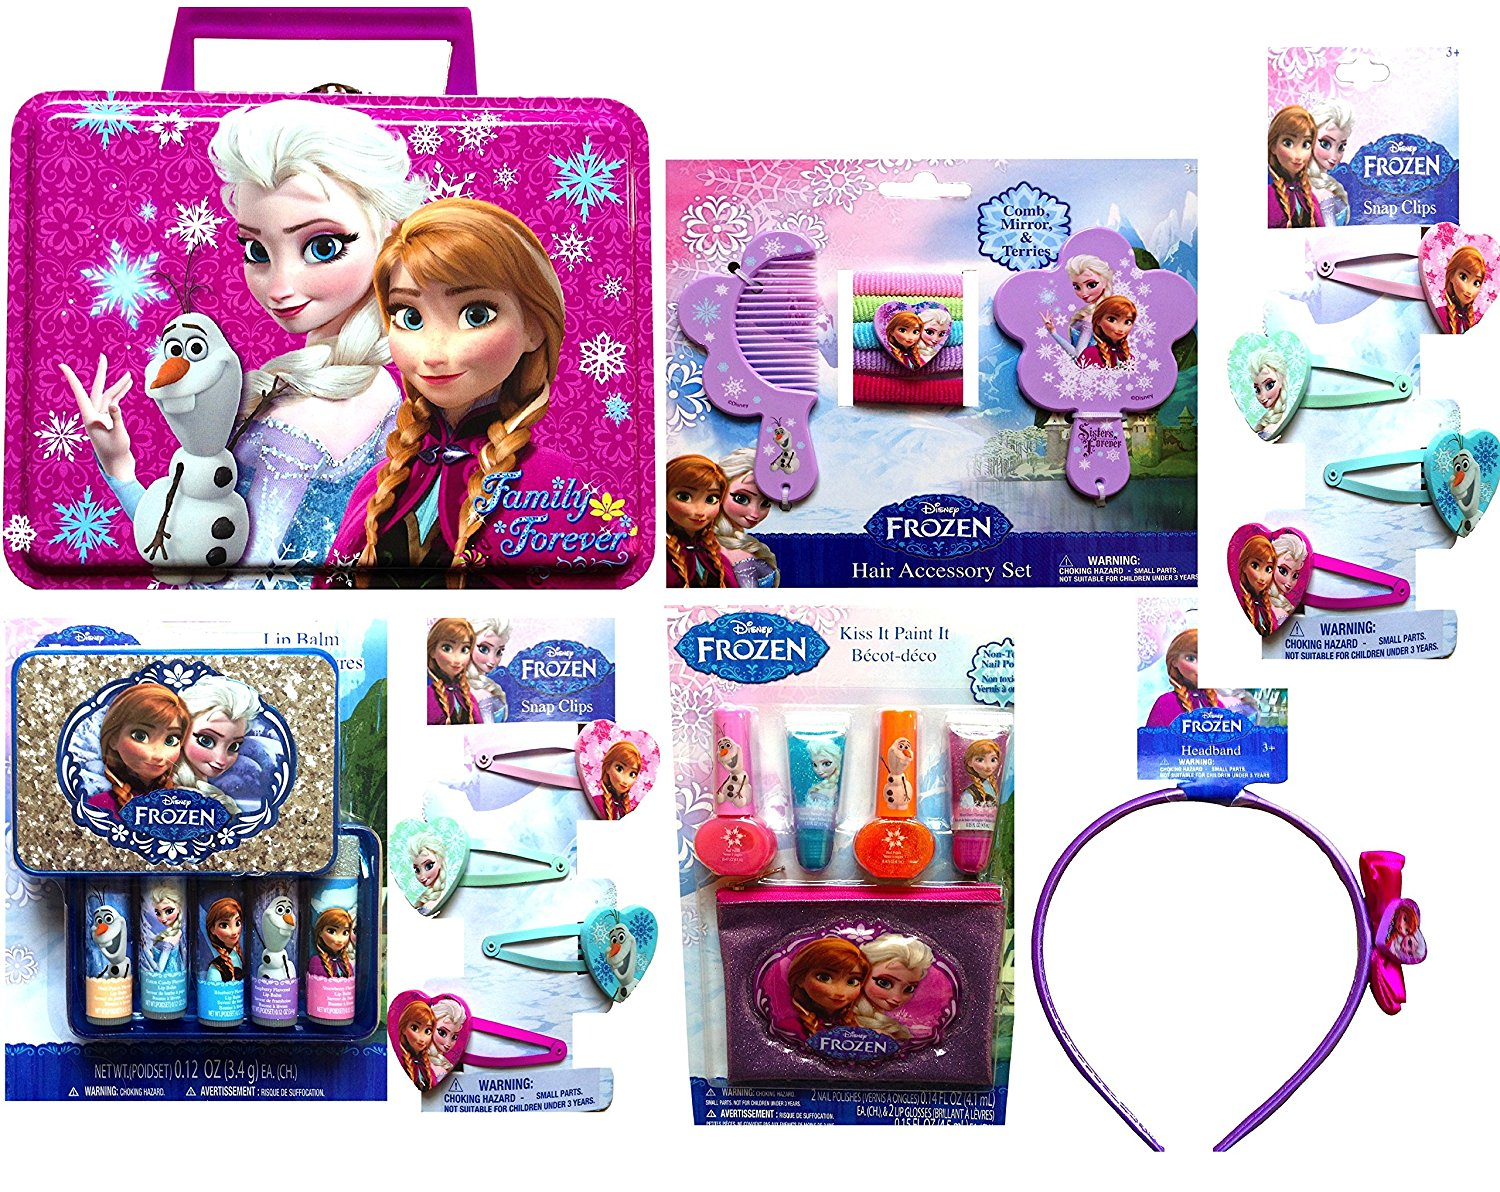 Disney Frozen Tin Boxes for Storing Includes Back to School Exclusive Frozen Accessories (PINK TIN)